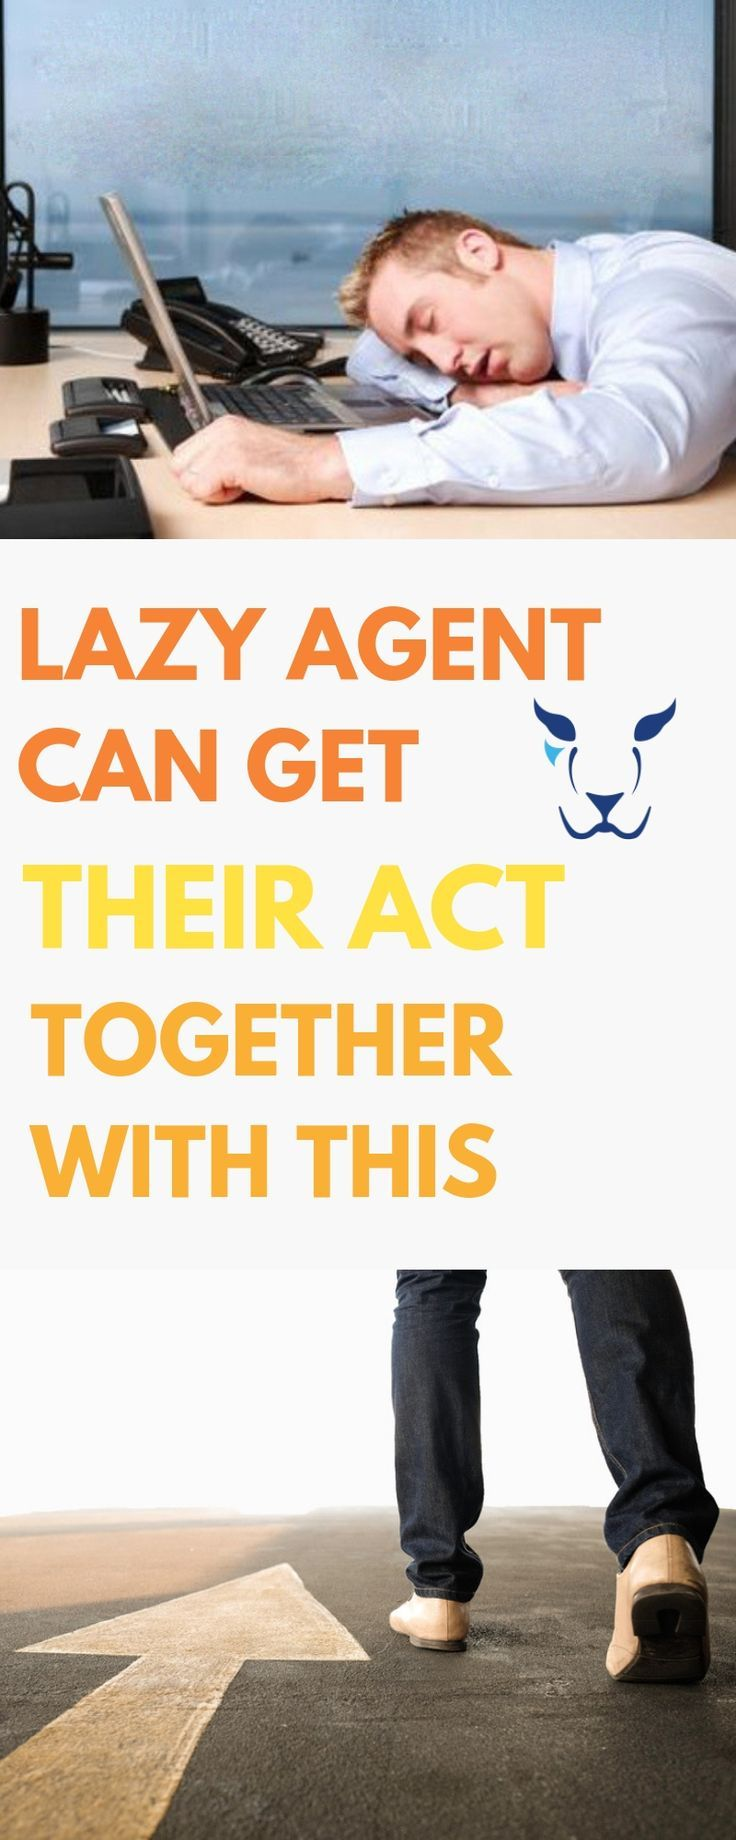 Lazy Agents Can Get Their Act Together With This Realestateagent Realestatemarket Realestateguide Real Estate Guide Online Real Estate Real Estate Education